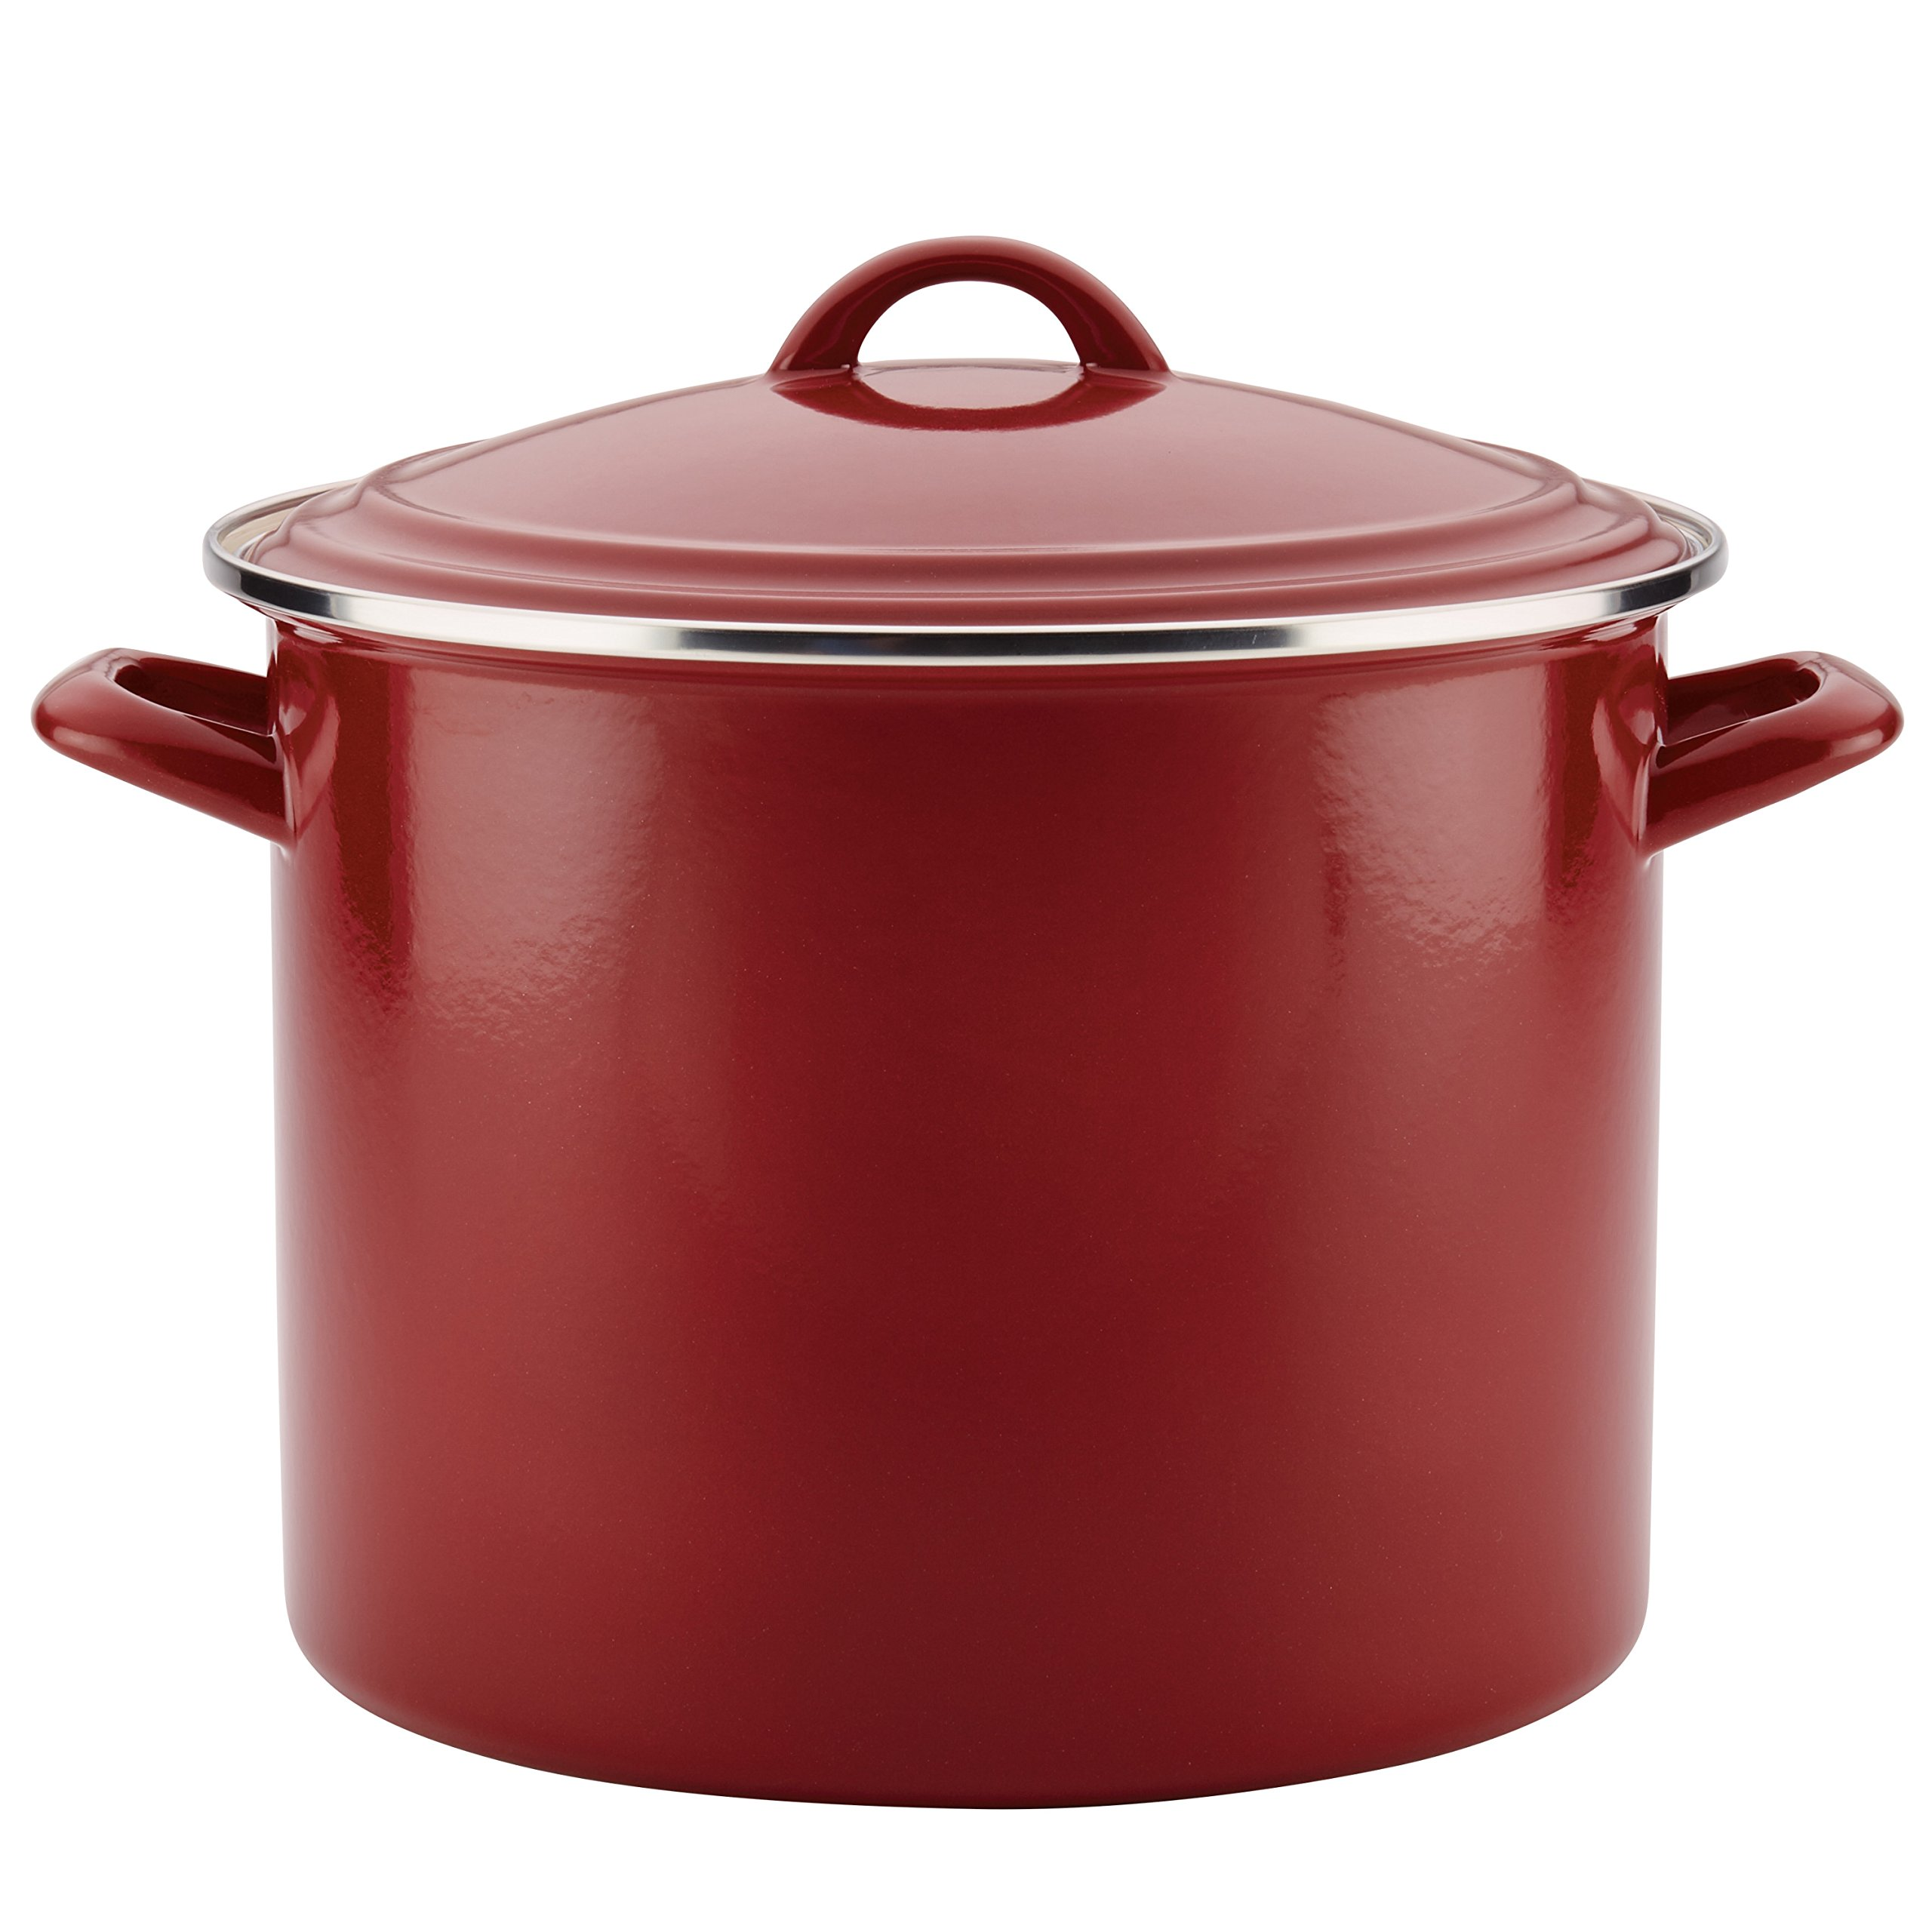 Ayesha Curry Enamel on Steel Stockpot, 12-Quart, Sienna Red